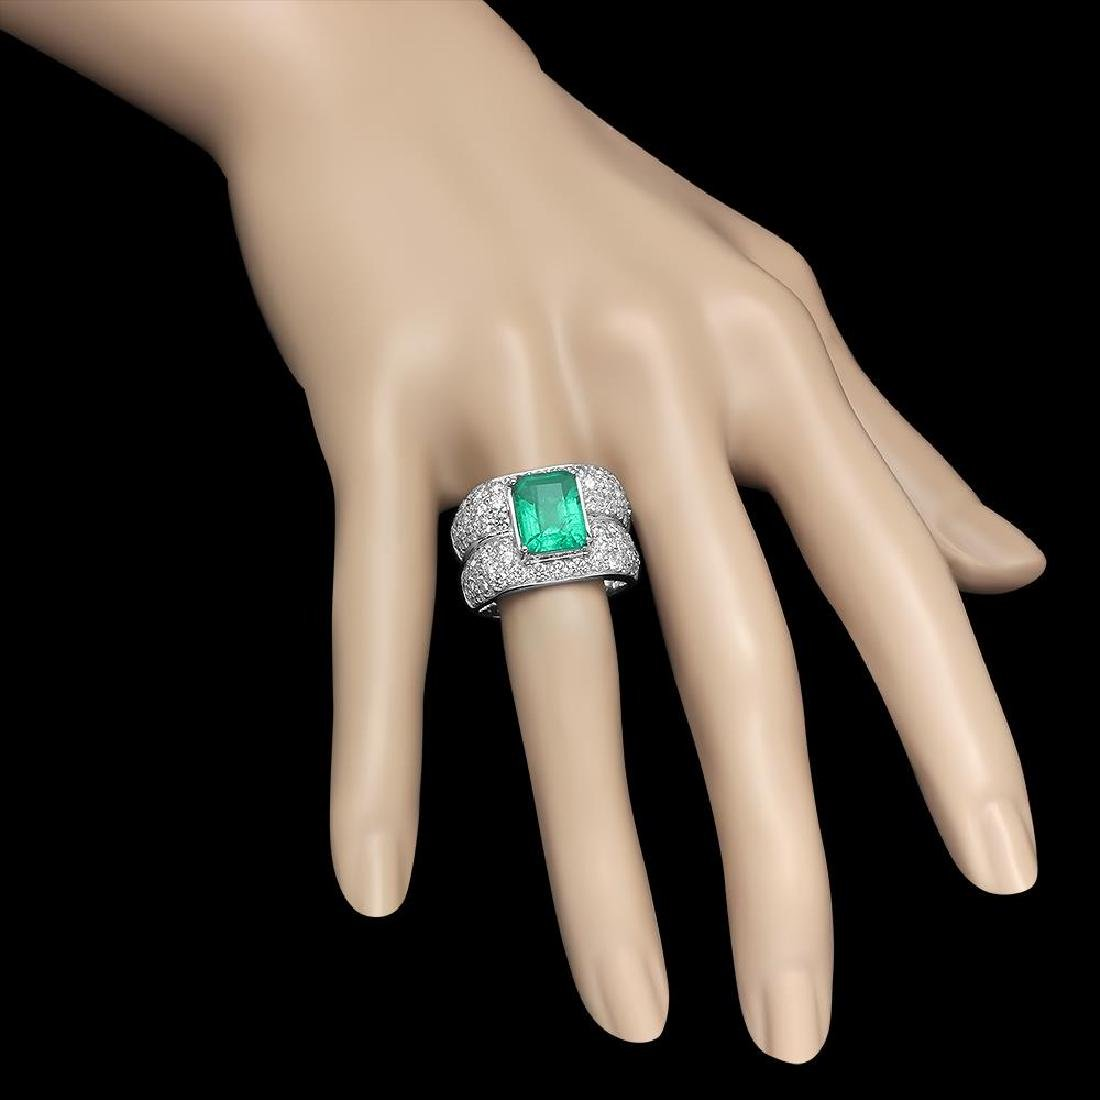 14K Gold 3.45 Emerald 3.68 Diamond Ring - 3